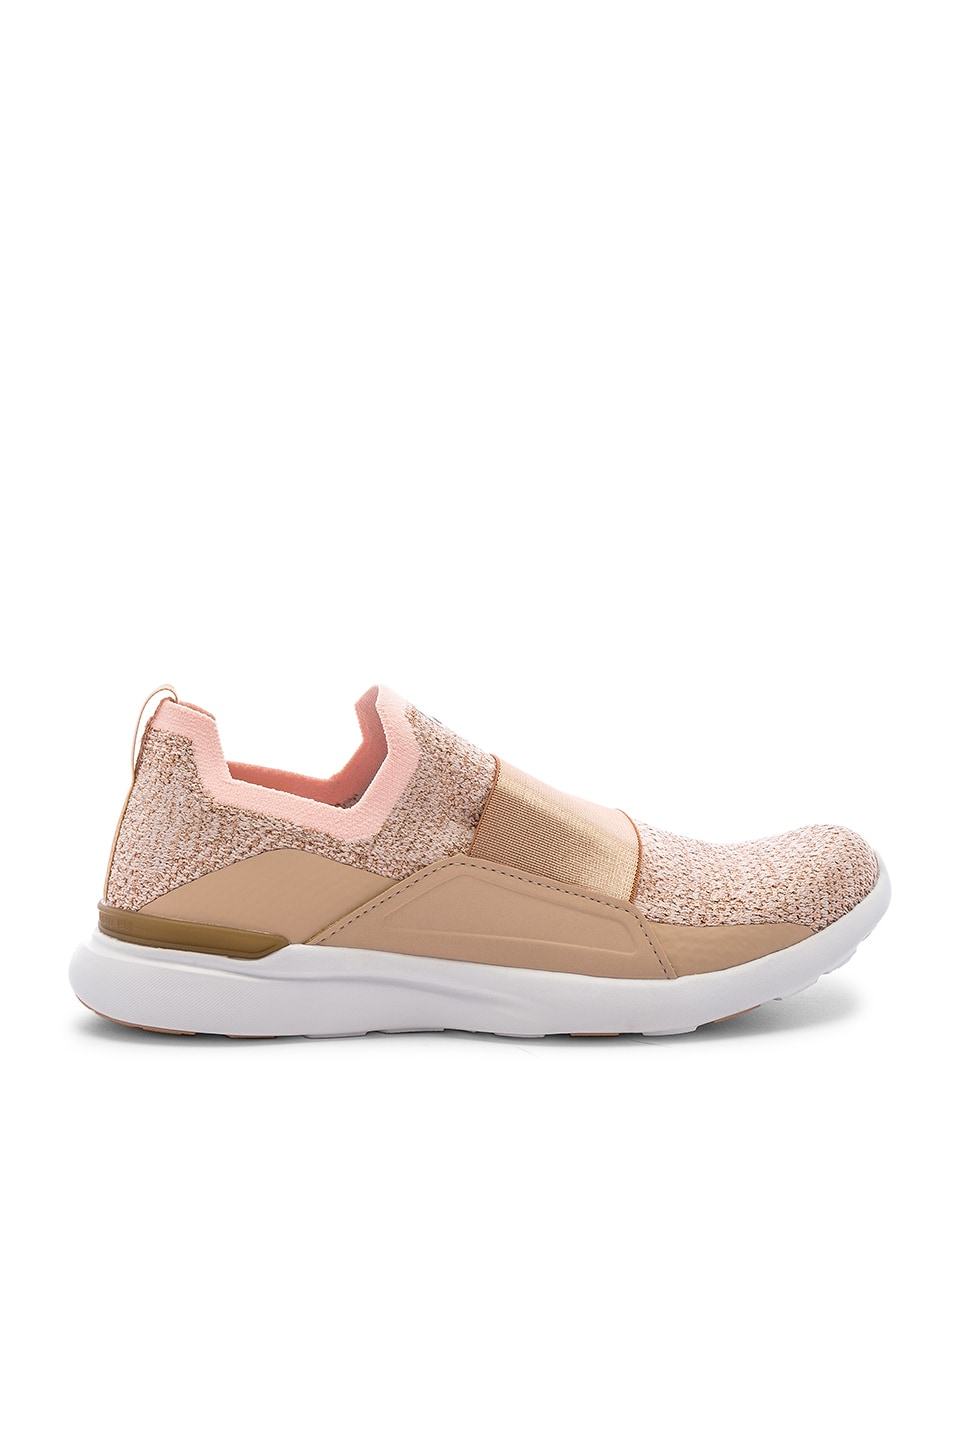 APL: Athletic Propulsion Labs Techloom Bliss Sneaker in Rose Gold & White